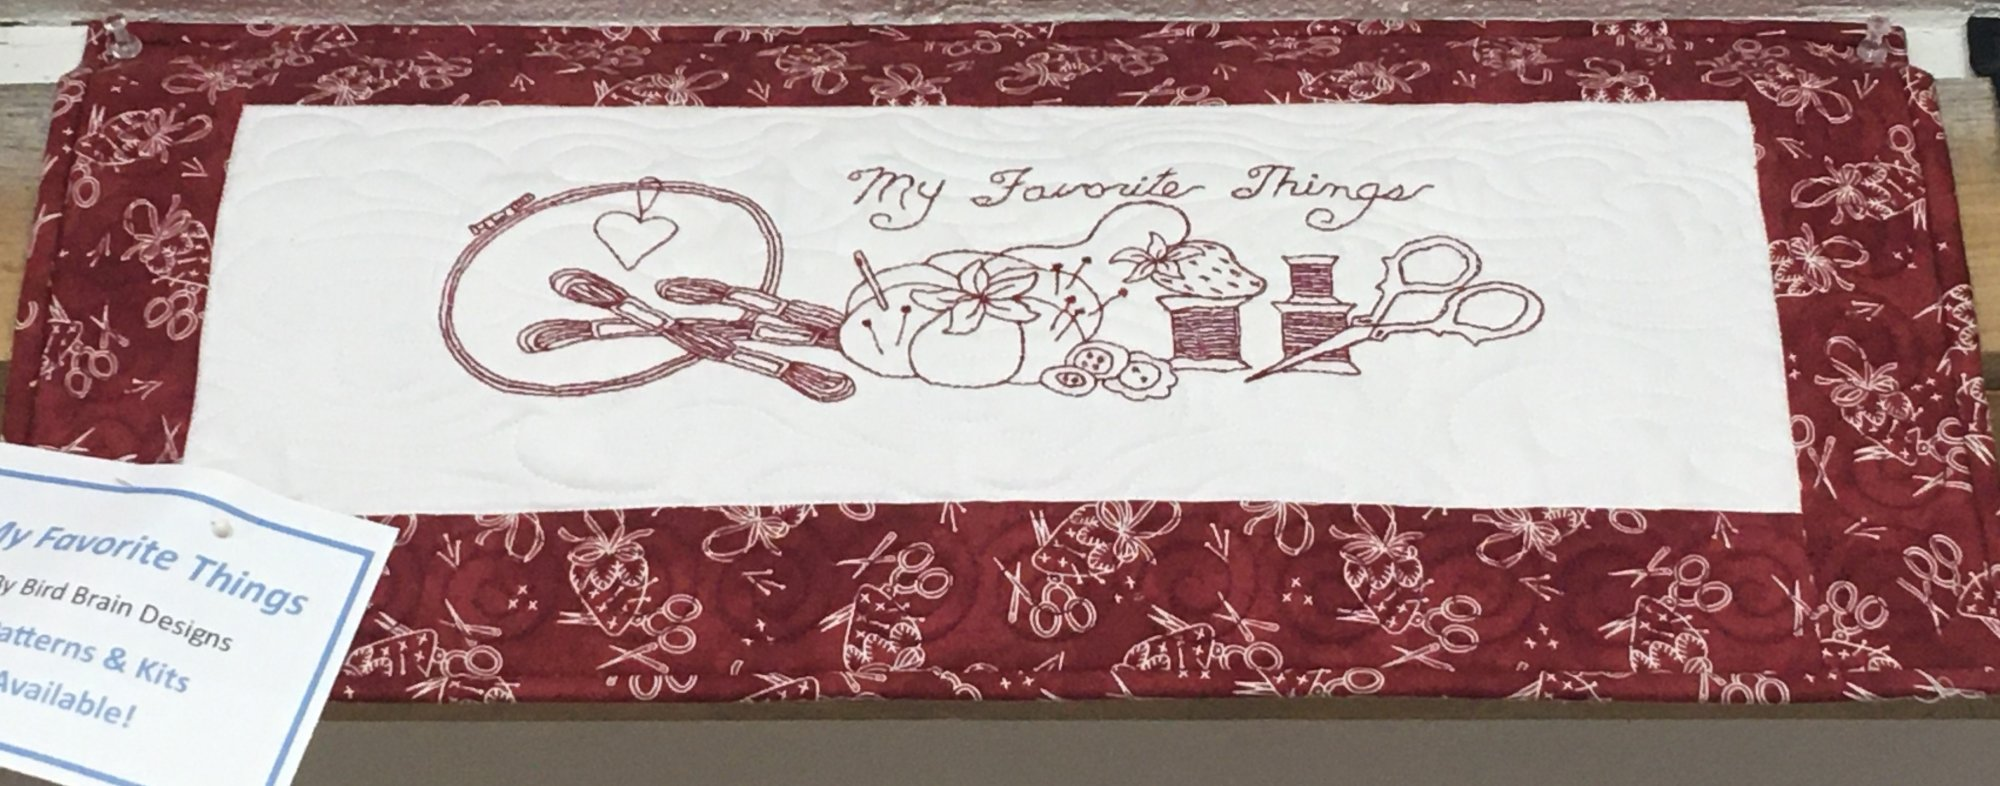 My Favorite Things Pre-embroidered Wall Hanging Kit